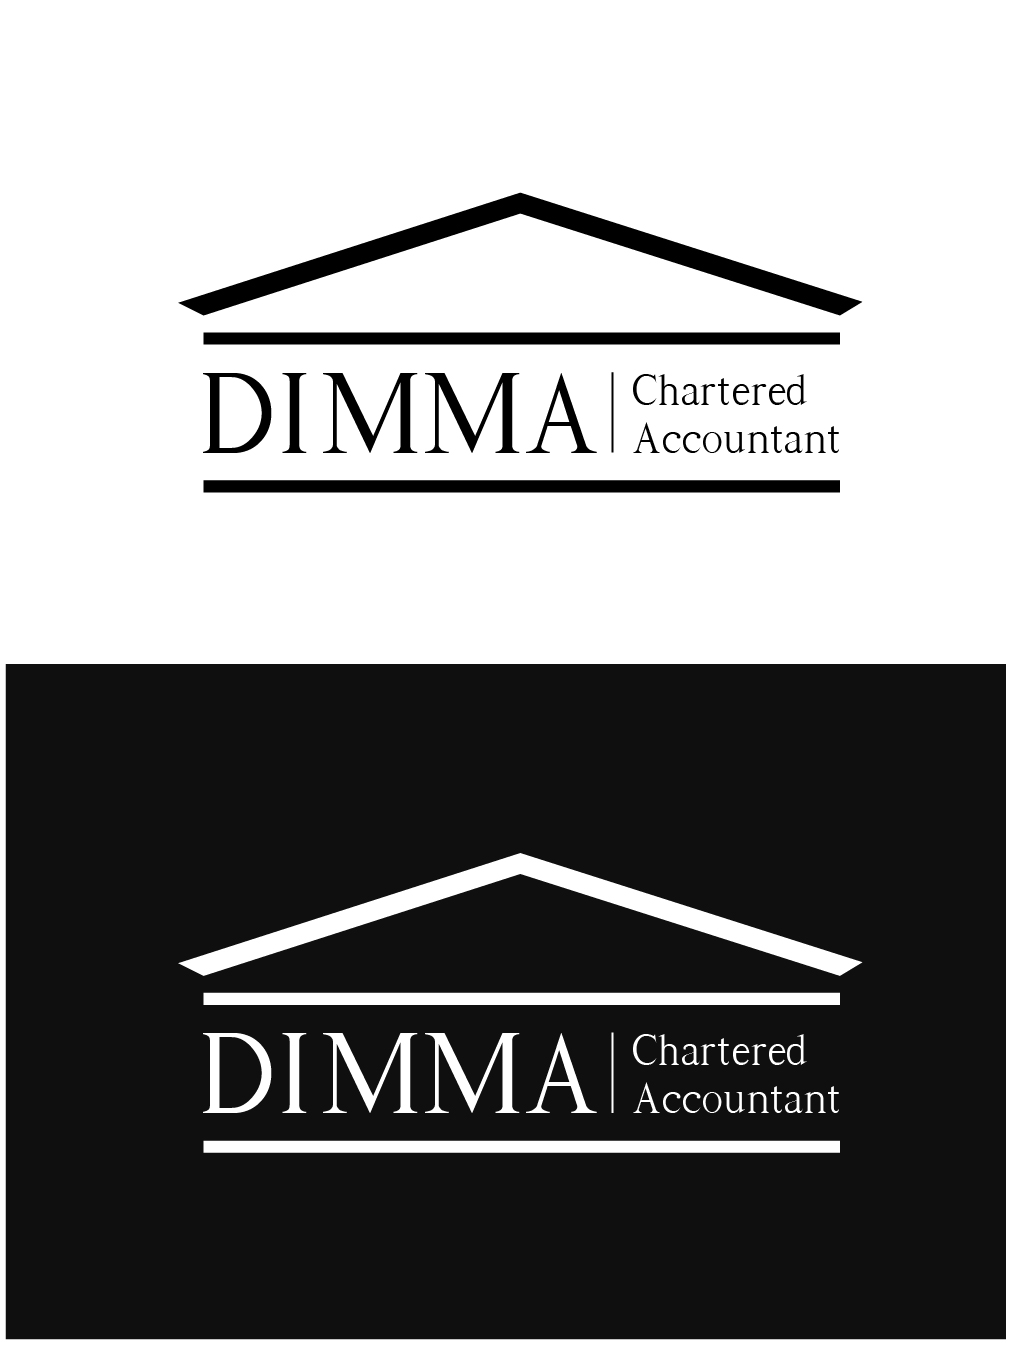 Logo Design by gkonta - Entry No. 39 in the Logo Design Contest Creative Logo Design for Dimma Chartered Accountant.